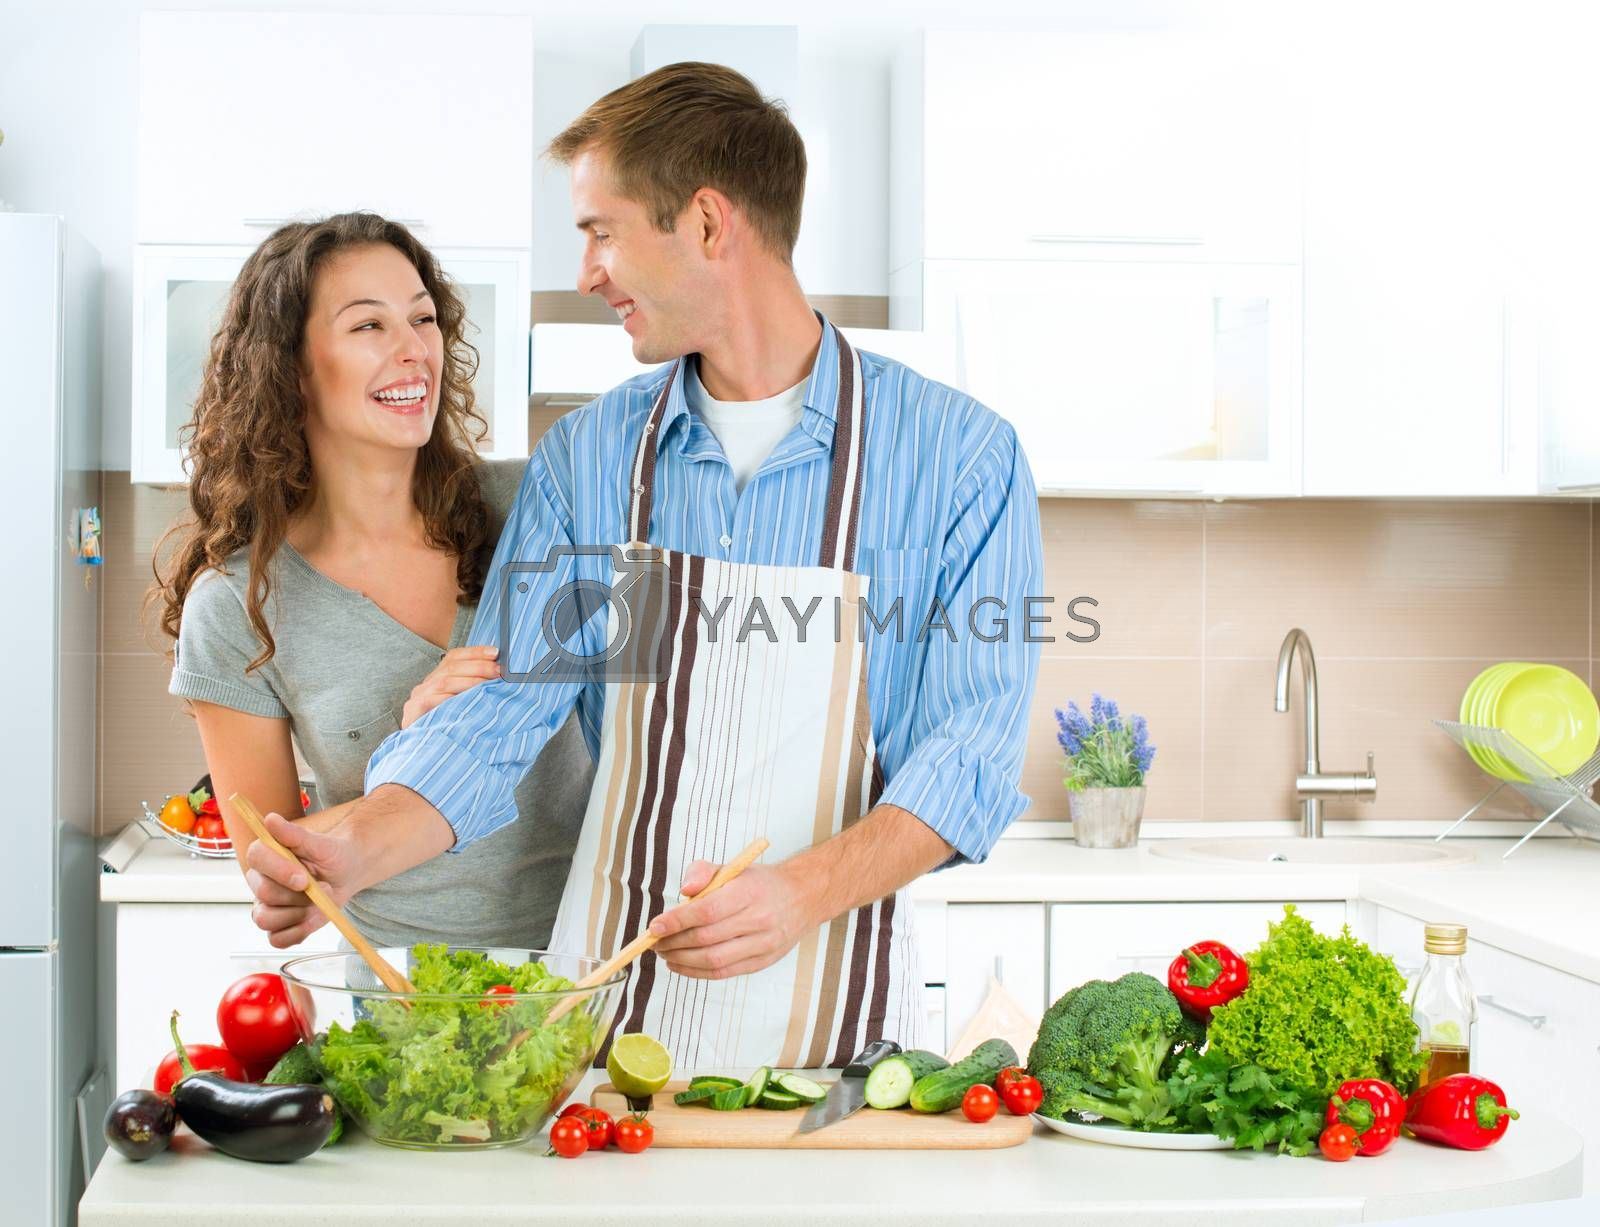 Happy Couple Cooking Together. Dieting. Healthy Food by SubbotinaA